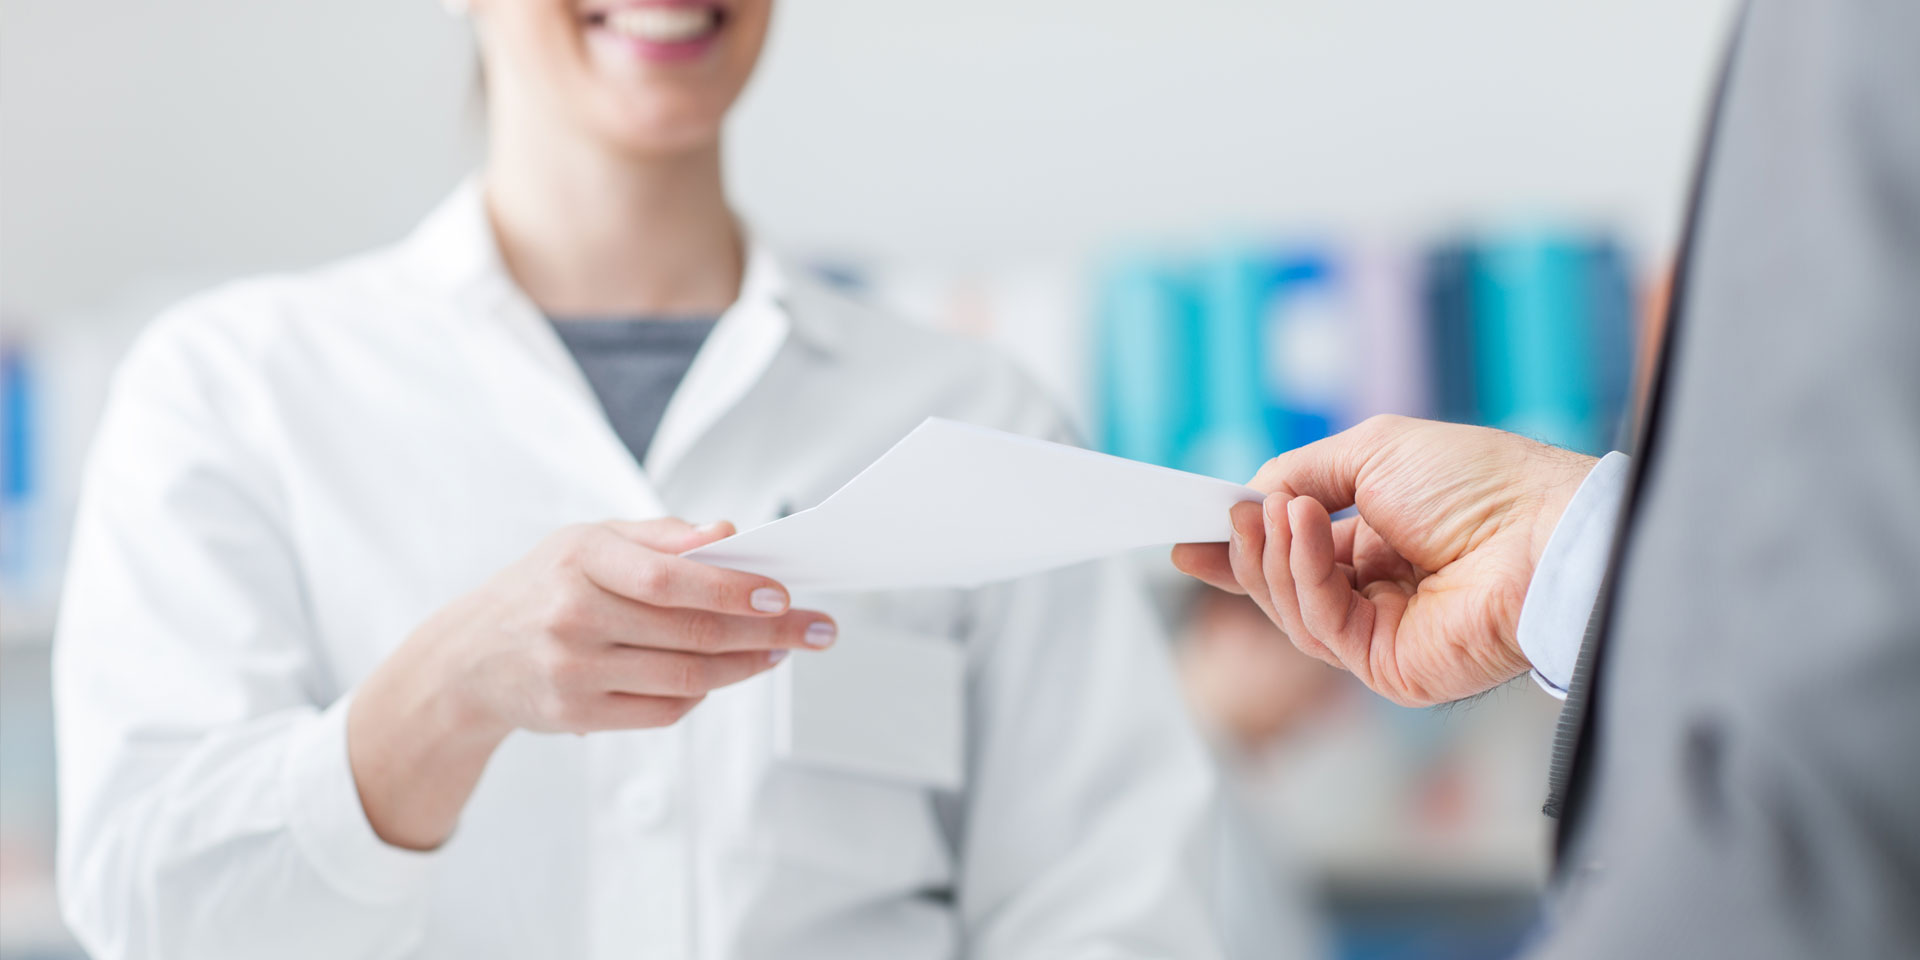 How to prepare your pharmacy to play a greater role in vaccination programs